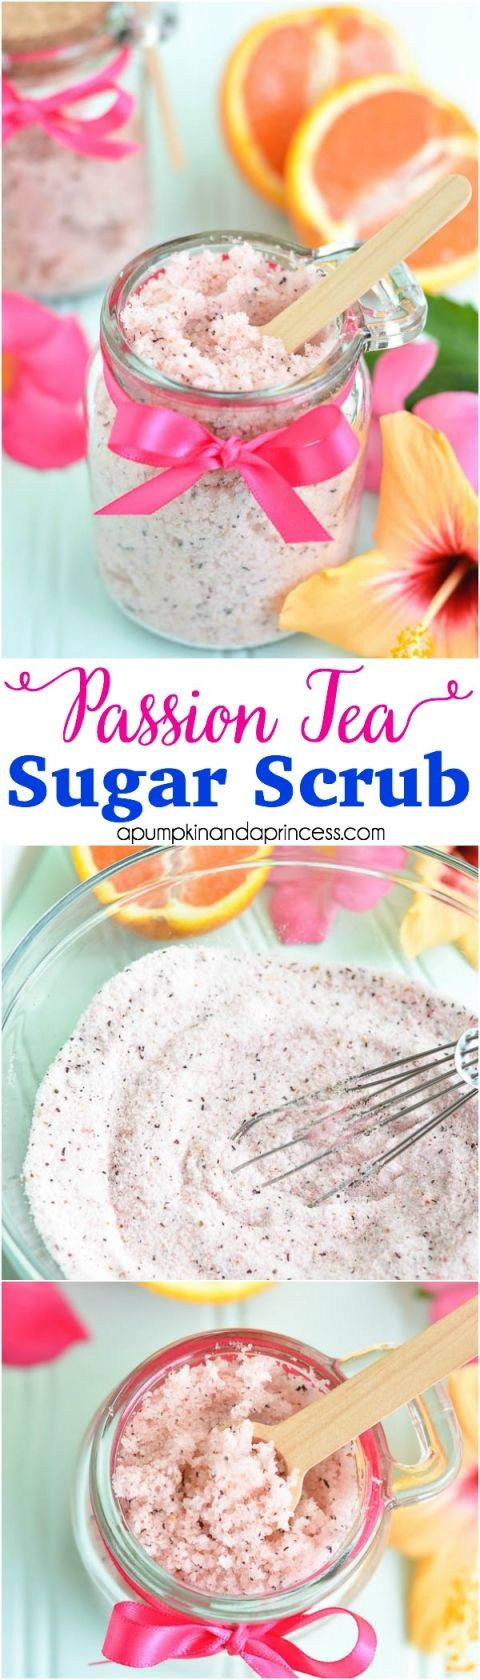 DIY Passion Tea Sugar Scrub